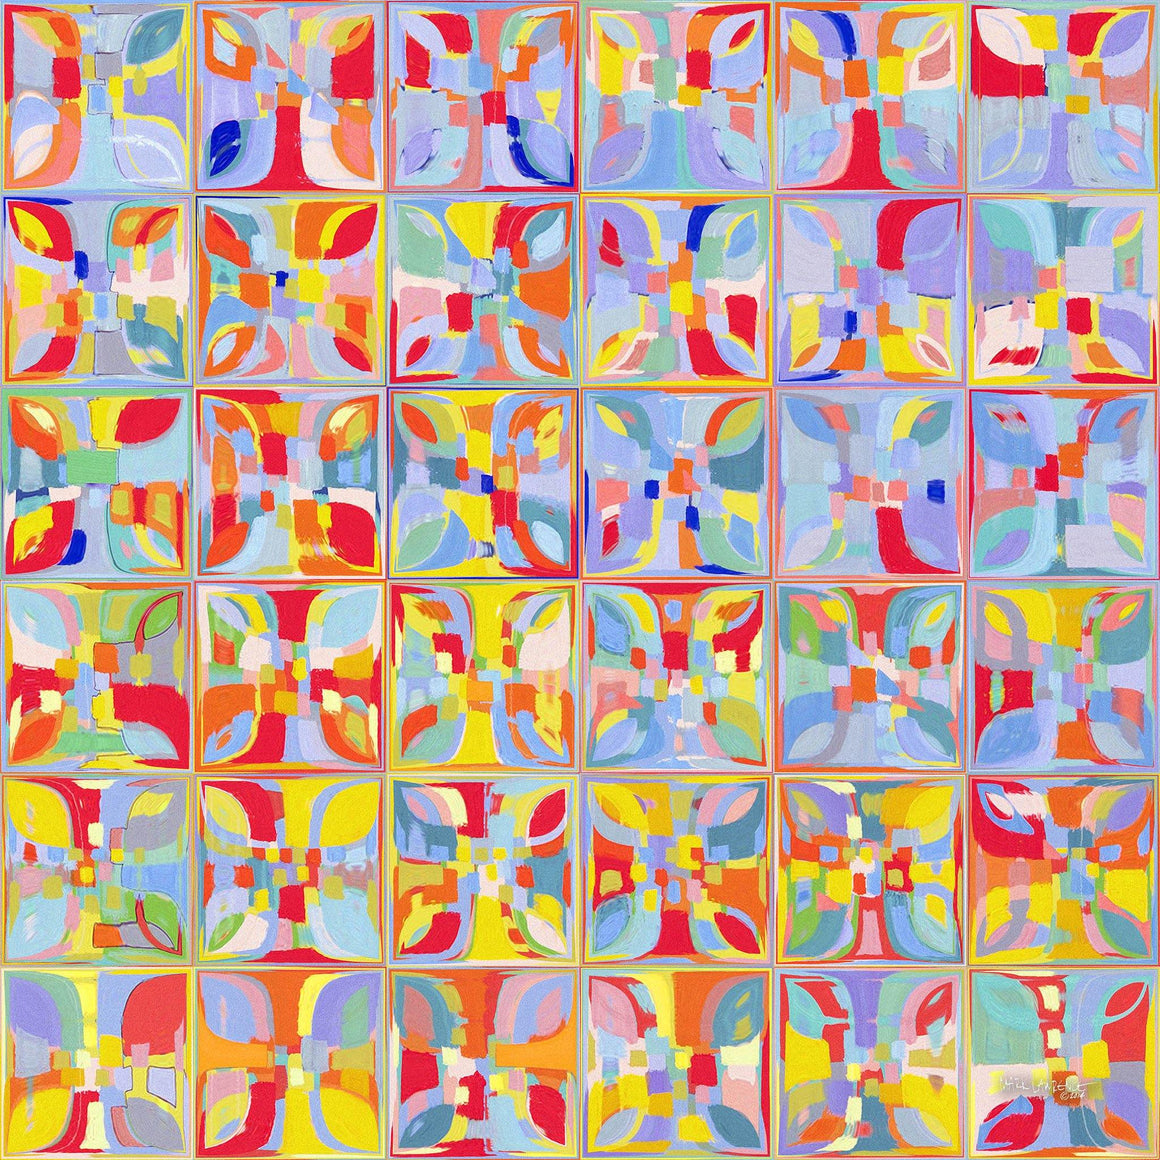 Summer Pastel Tiles. Copyright 2014 by Mark Lawrence. All Rights Reserved.